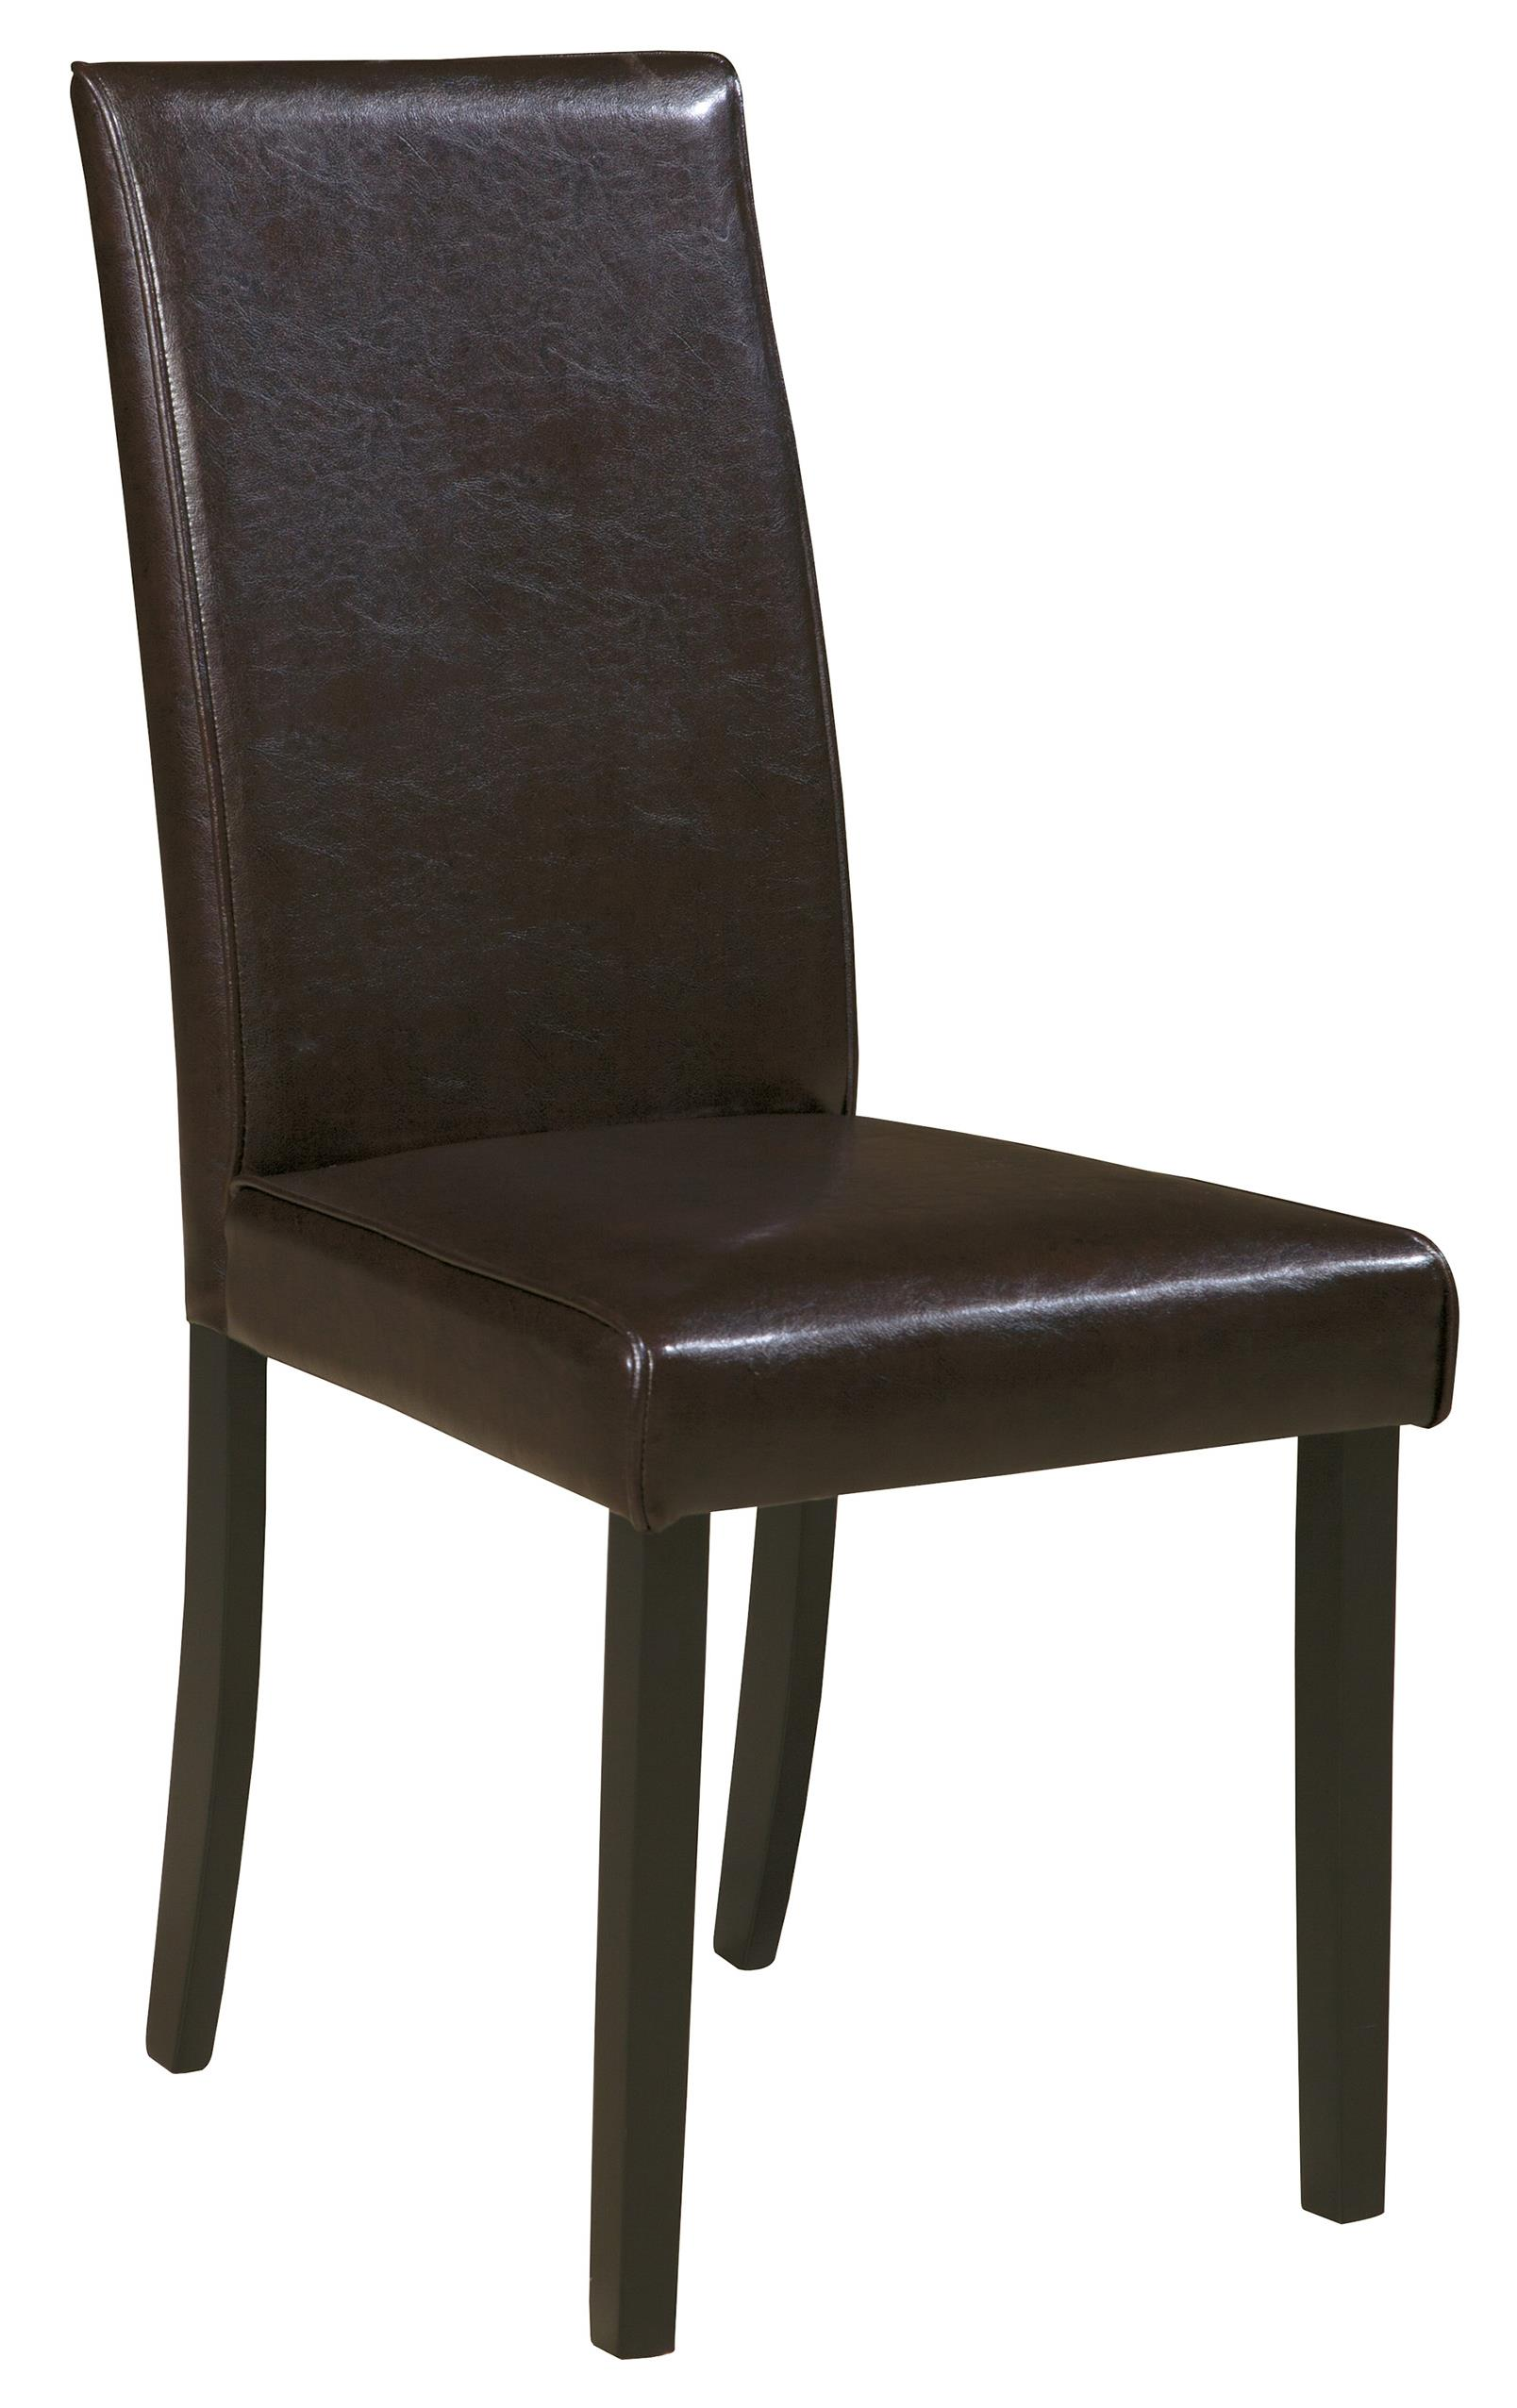 Dining Side Chairs Signature Design By Ashley Kimonte Dining Upholstered Side